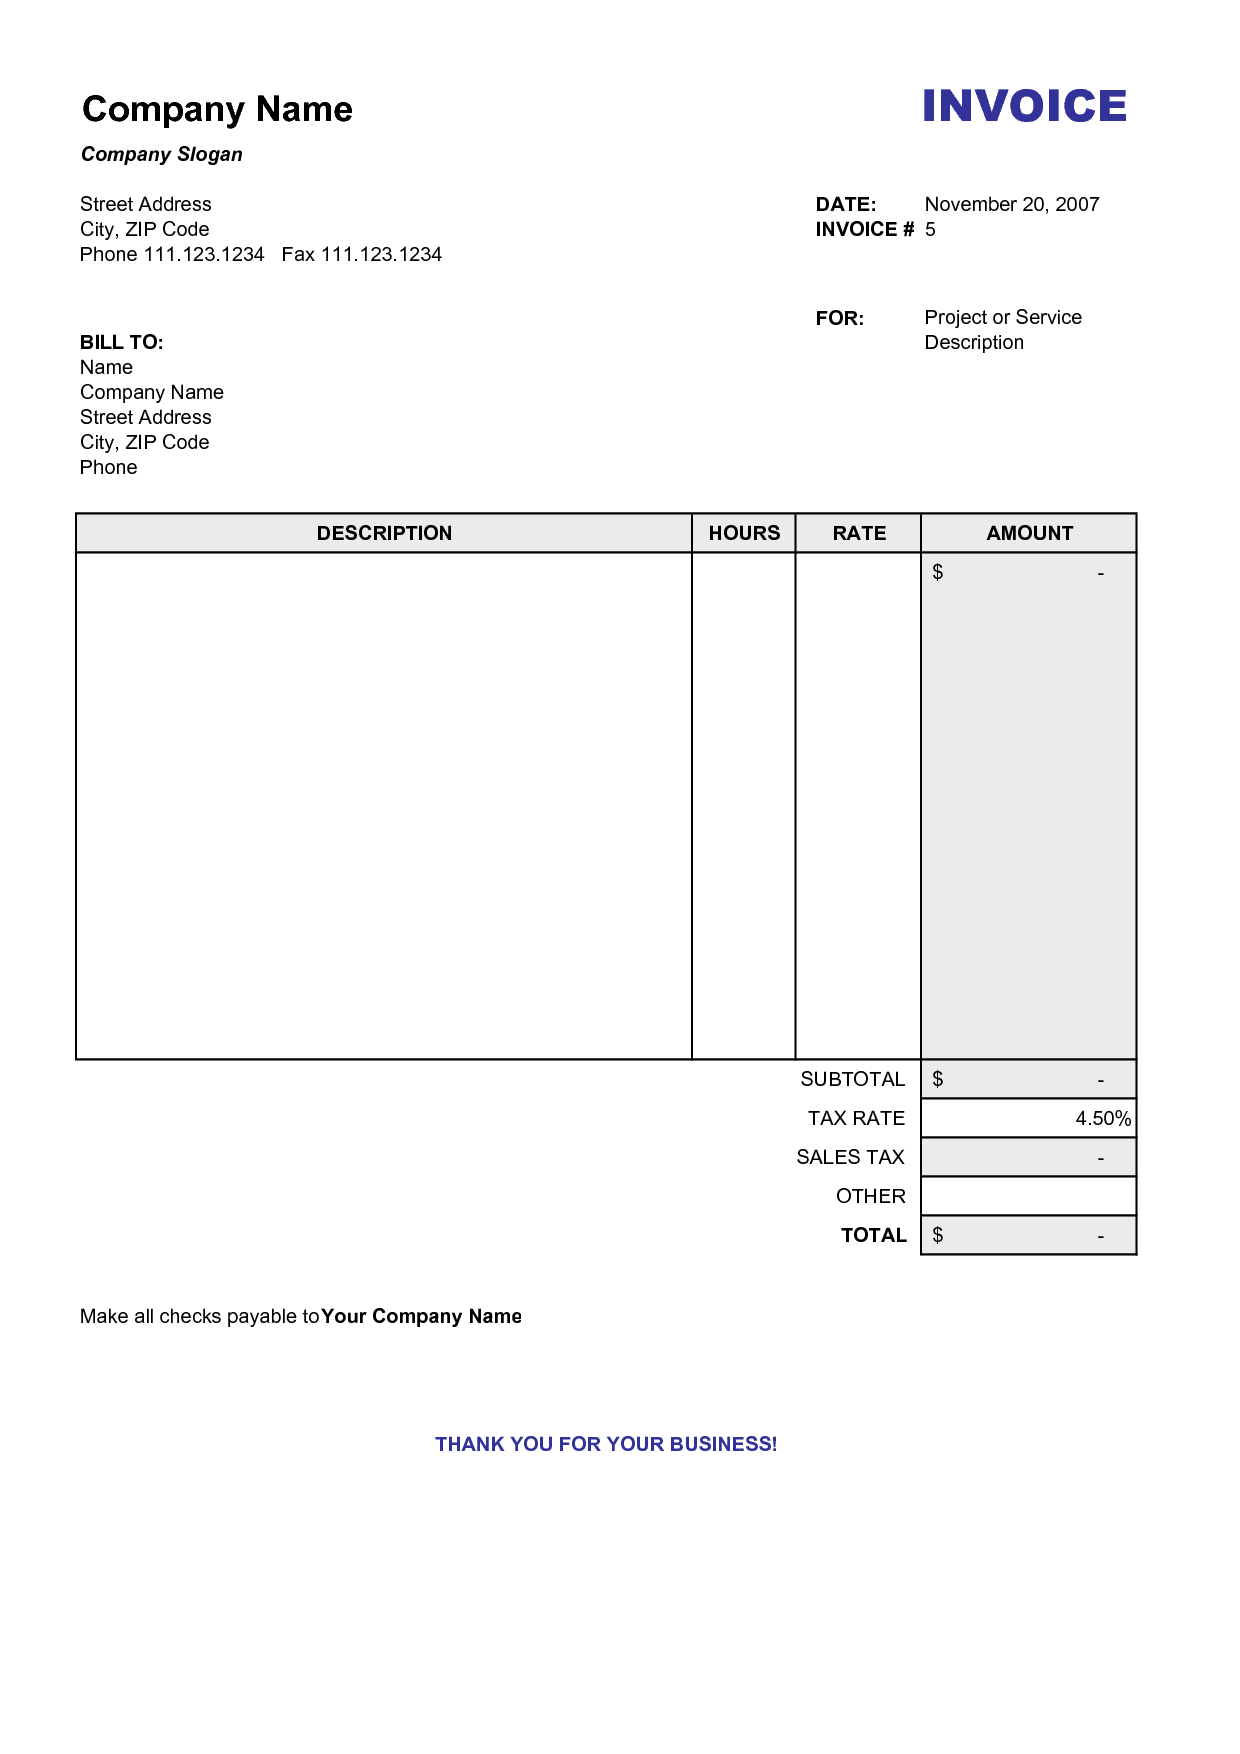 Blank Billing Invoice Scope Of Work Template Invoice Format In Excel Invoice Template Word Invoice Format